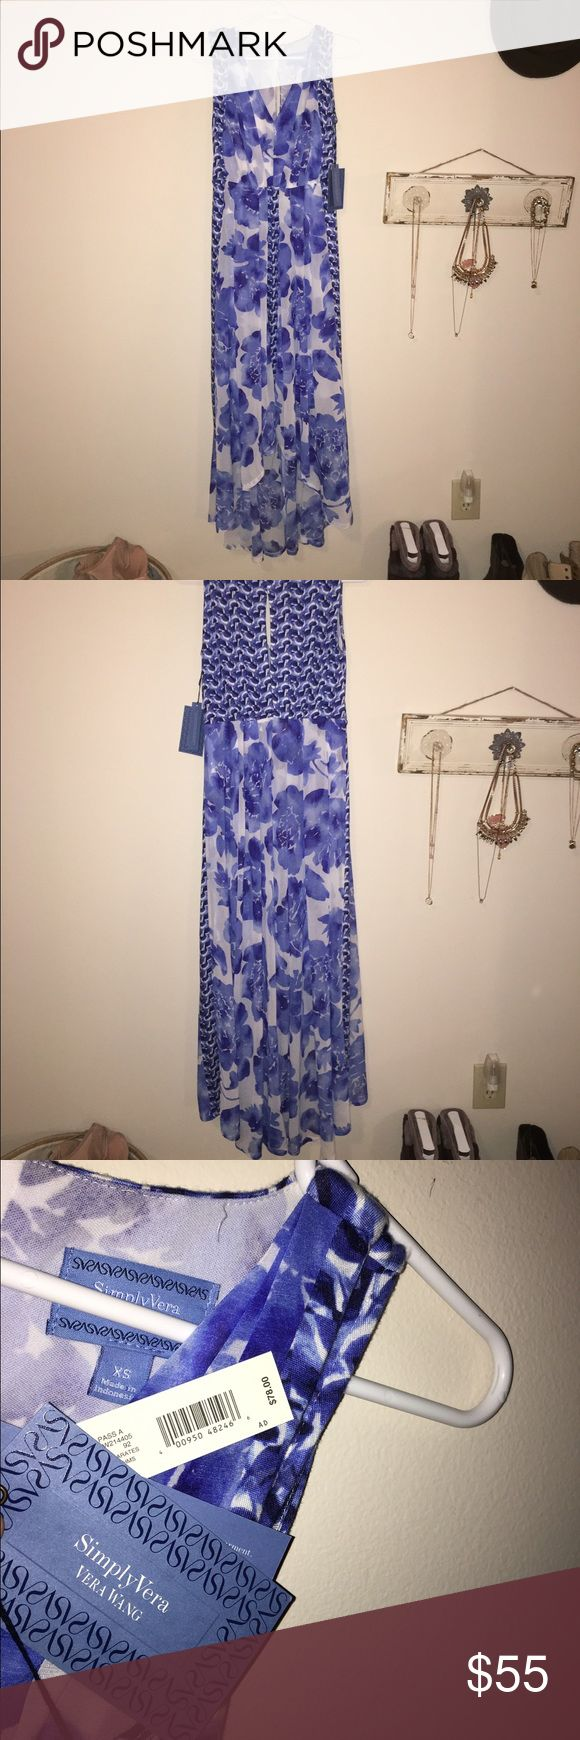 Simply Vera blue and white maxi dress Bought this at Kohls, new with tags, never worn. Different fabrics, shows a little of the ankles. Roomy, comfortable and cute! Size Xs but could fit a small and potentially a medium. Vera Wang Dresses Maxi